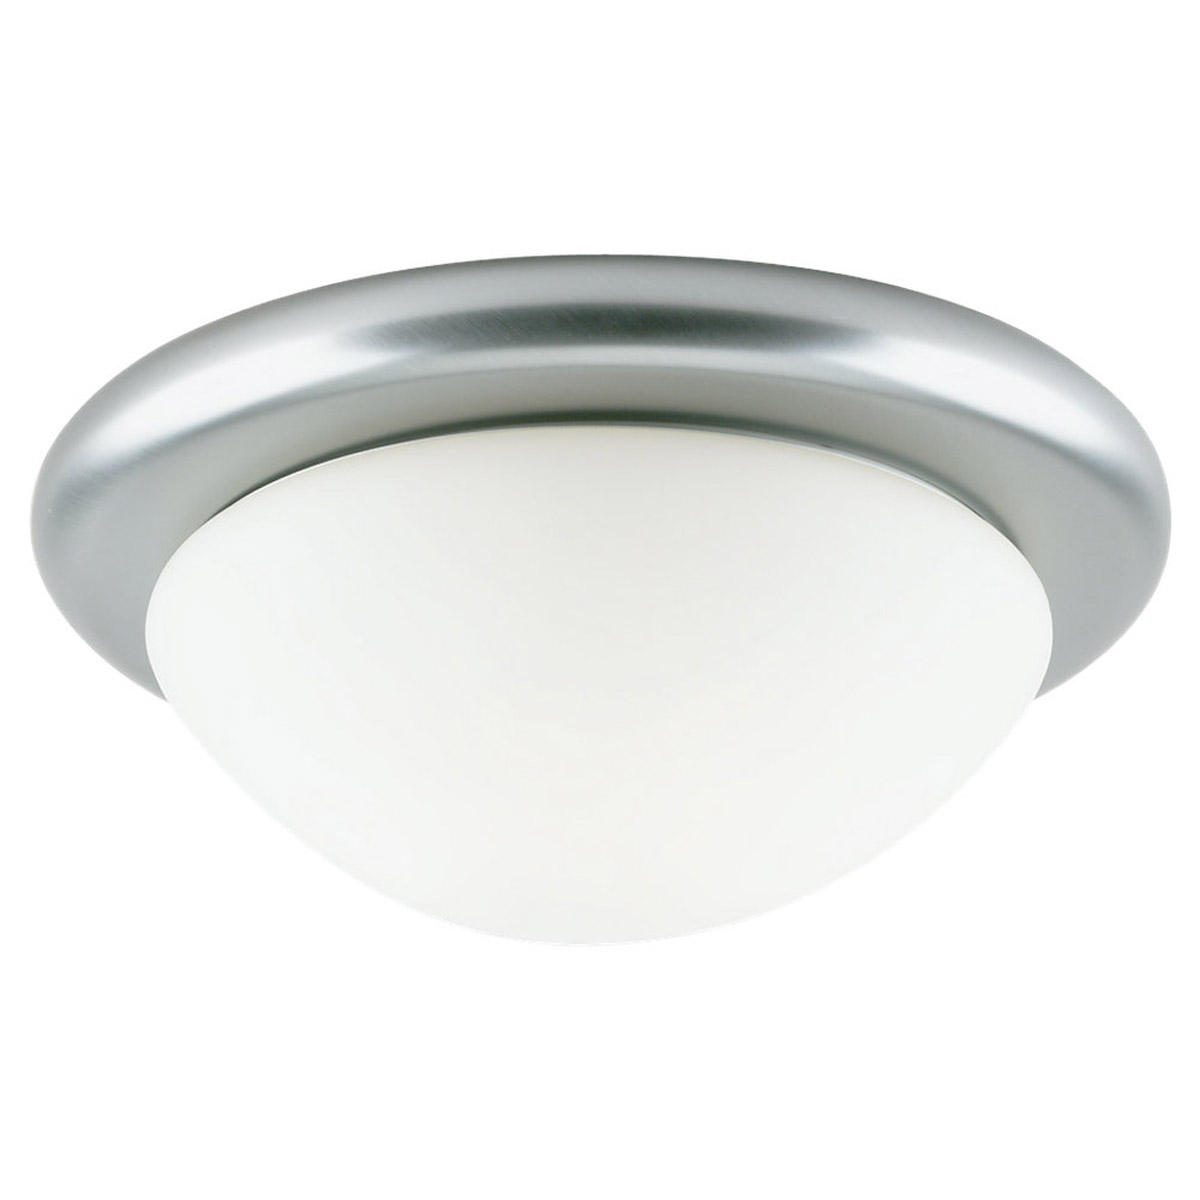 Sea Gull Lighting Signature 2 Light Flush Mount in Brushed Nickel 53070-962 photo